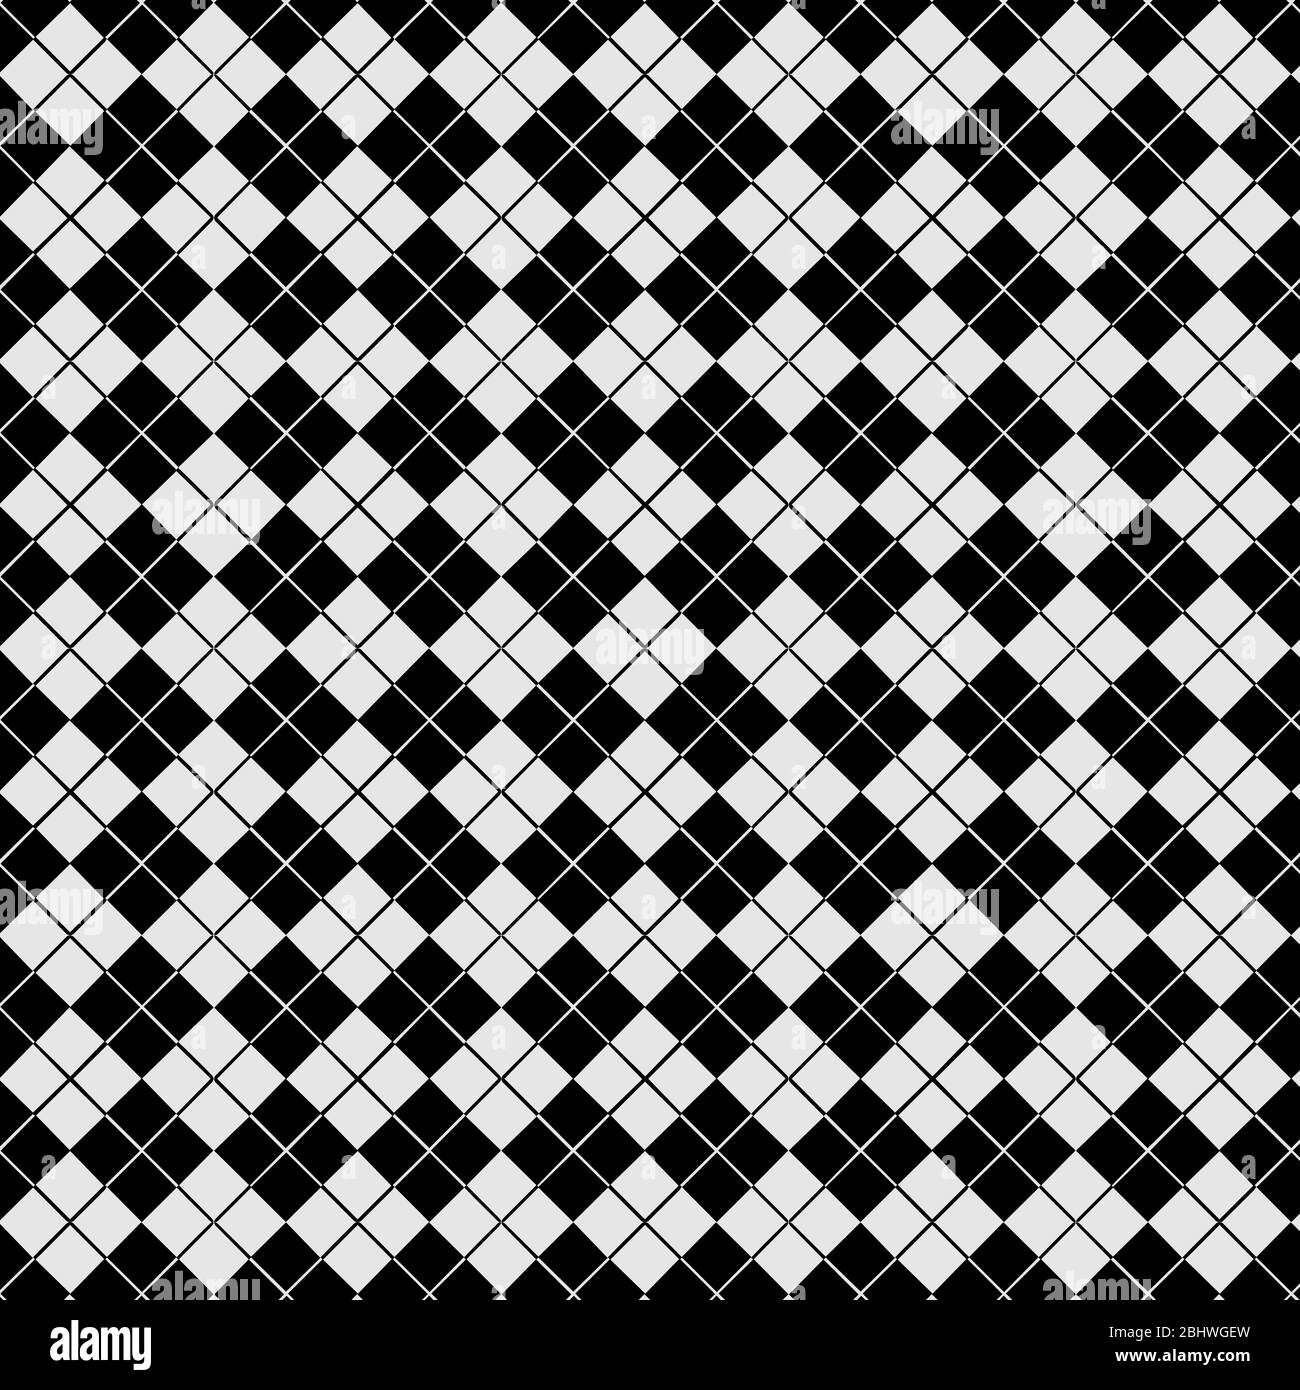 Vector Seamless Pattern Tile Modern Stylish Black And White Texture Abstract Background Wallpaper Stock Vector Image Art Alamy